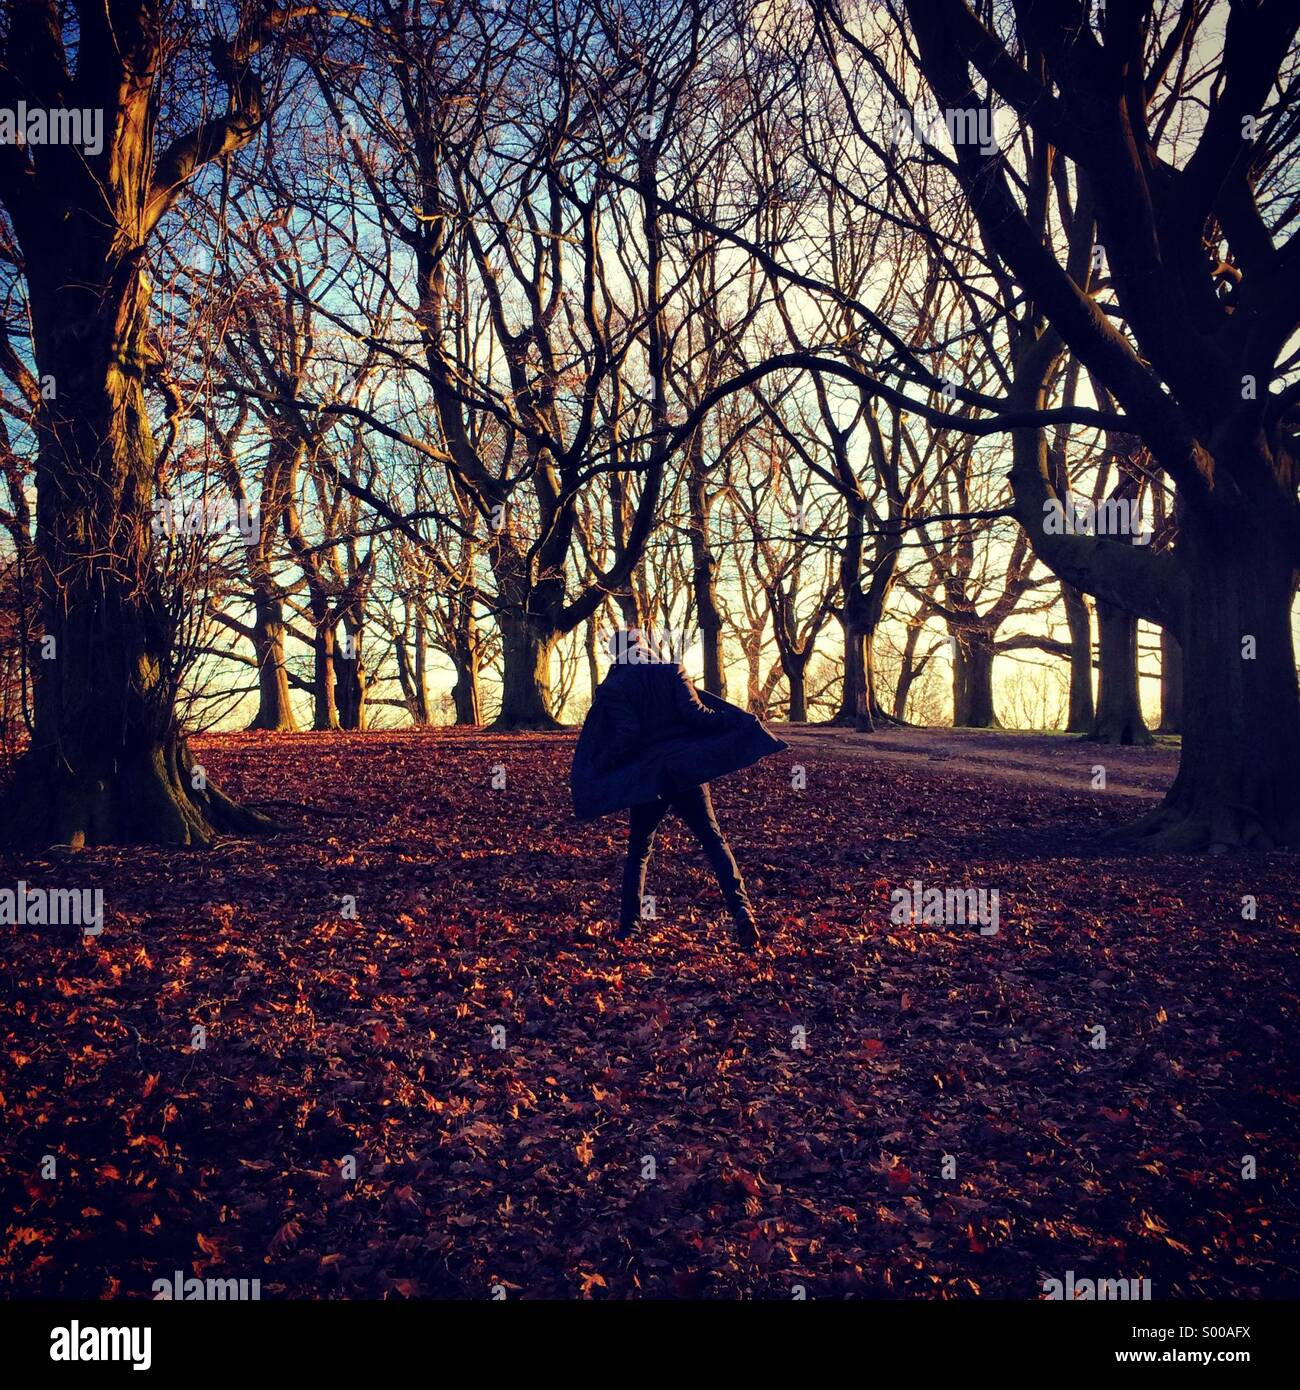 Walk through Hampstead Heath in the evening light with date - Stock Image